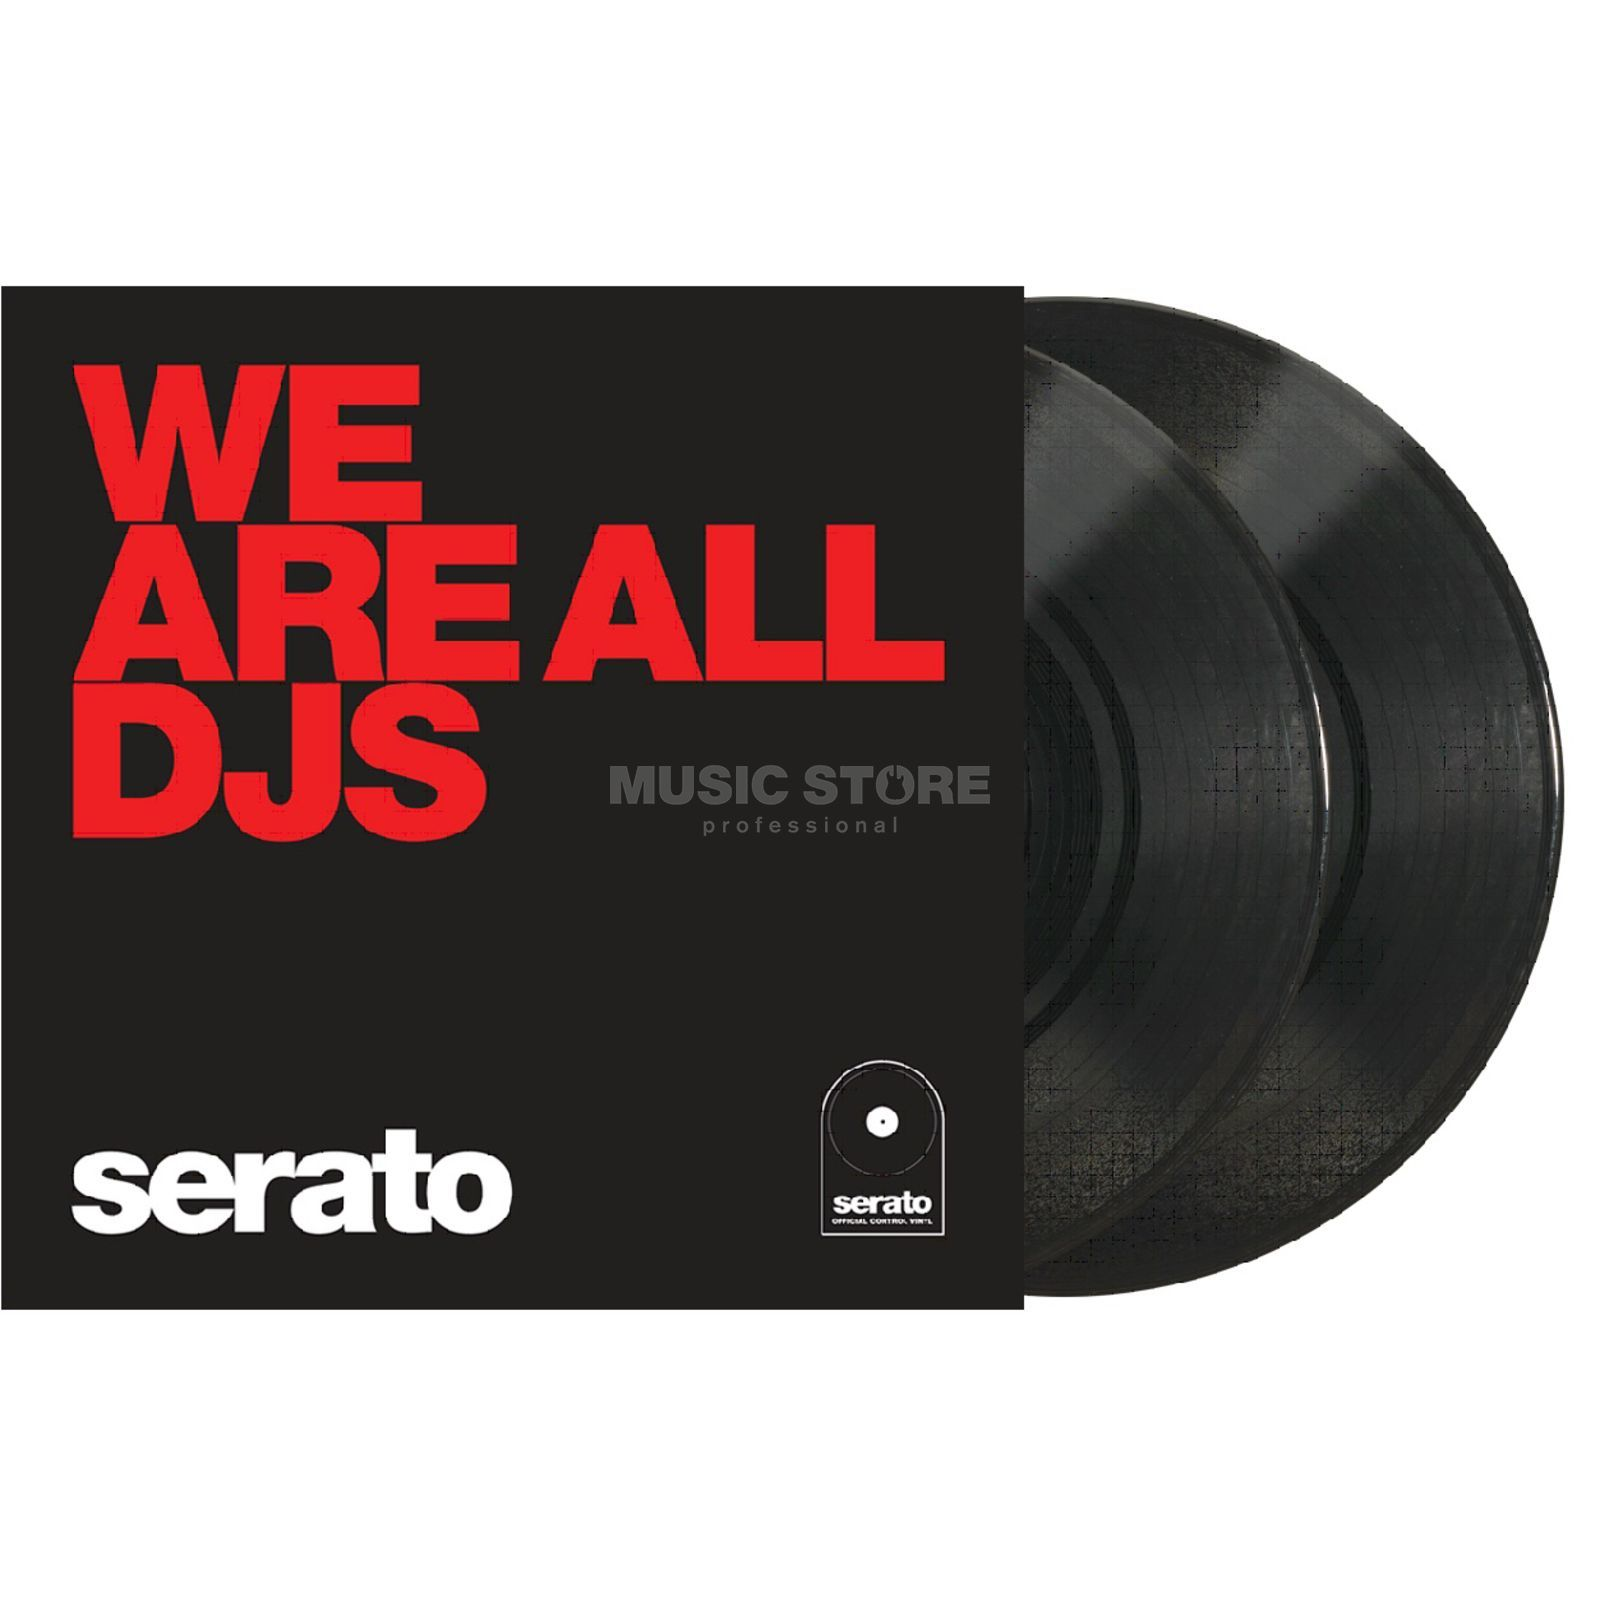 "Serato Manifesto 10"" Control Vinyls Black, We are all DJs Produktbillede"